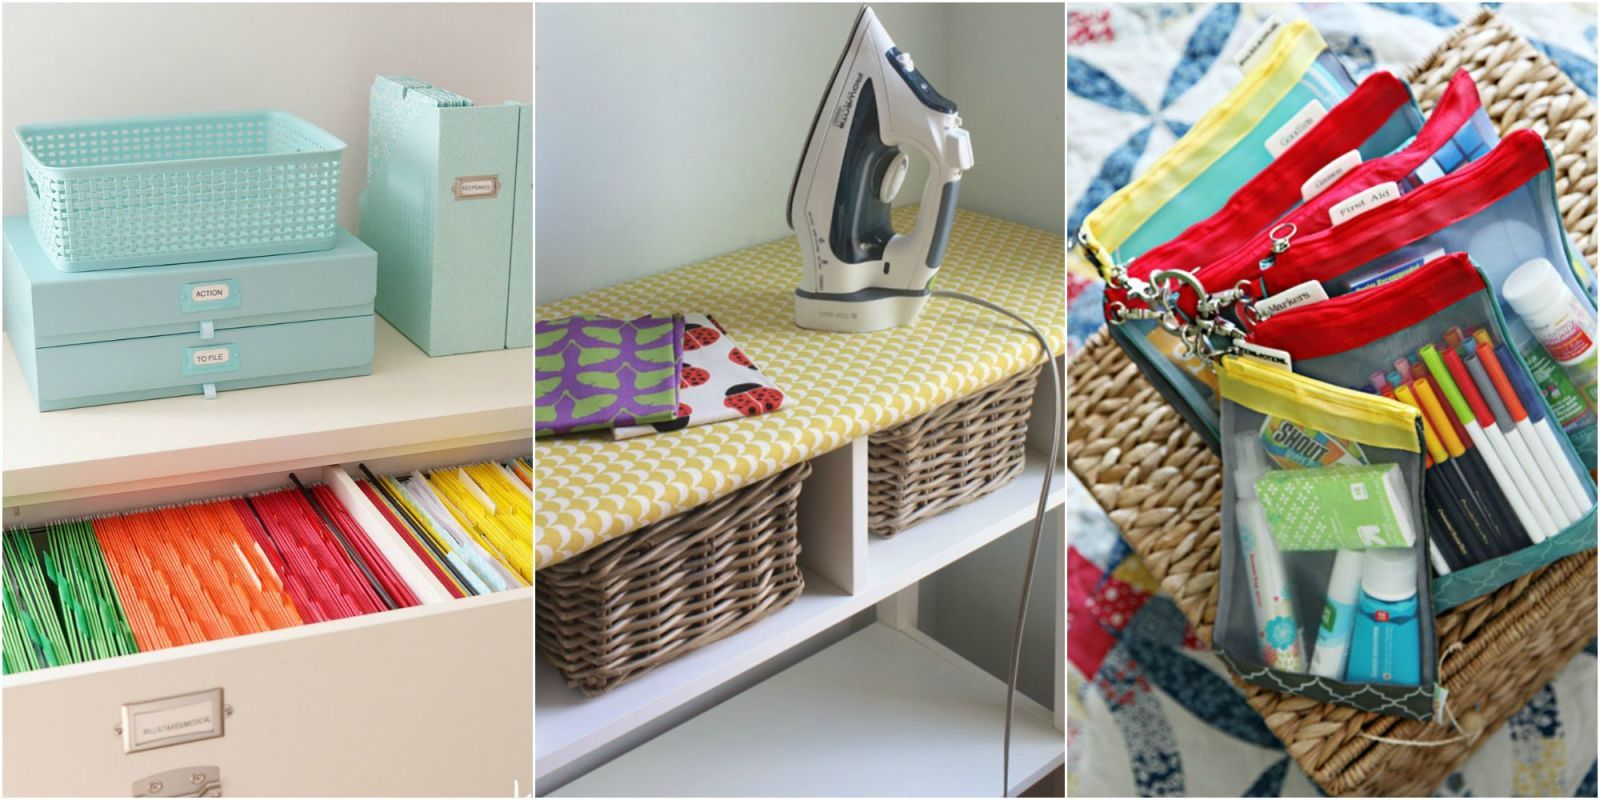 Modern Tips For The Tidiest Home Ever Easy Home Organization Organization Hacks Home Organization